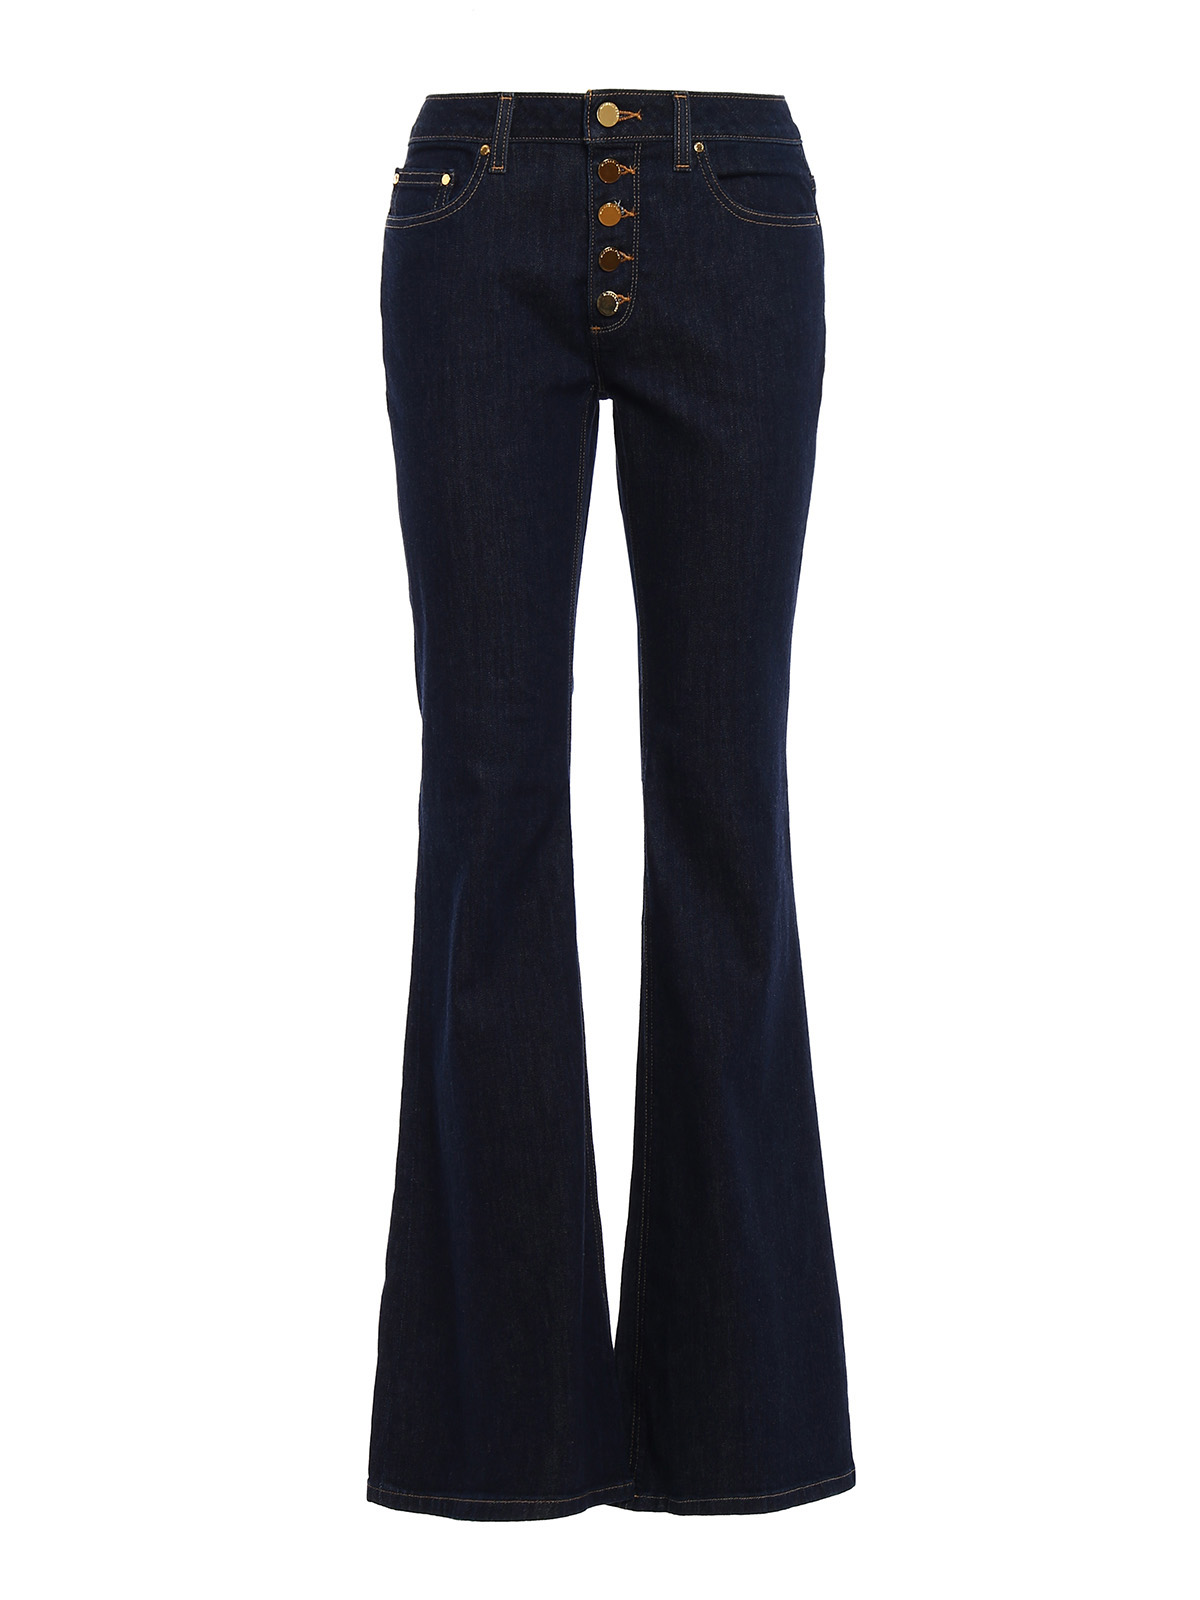 selma high waisted flared jeans by michael kors flared jeans ikrix. Black Bedroom Furniture Sets. Home Design Ideas